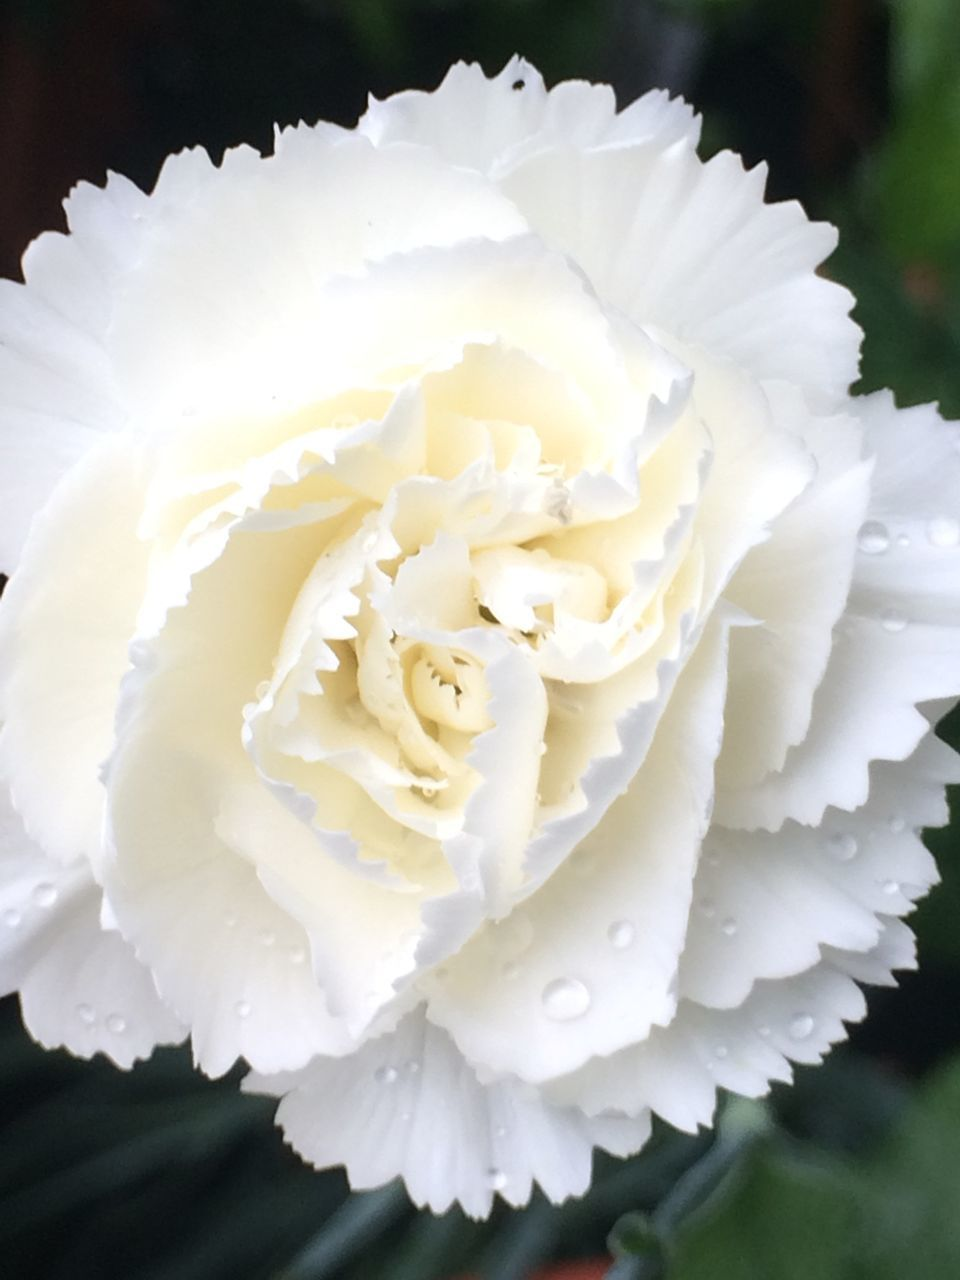 flower, white color, petal, beauty in nature, nature, flower head, close-up, no people, freshness, focus on foreground, day, fragility, plant, growth, outdoors, blooming, water